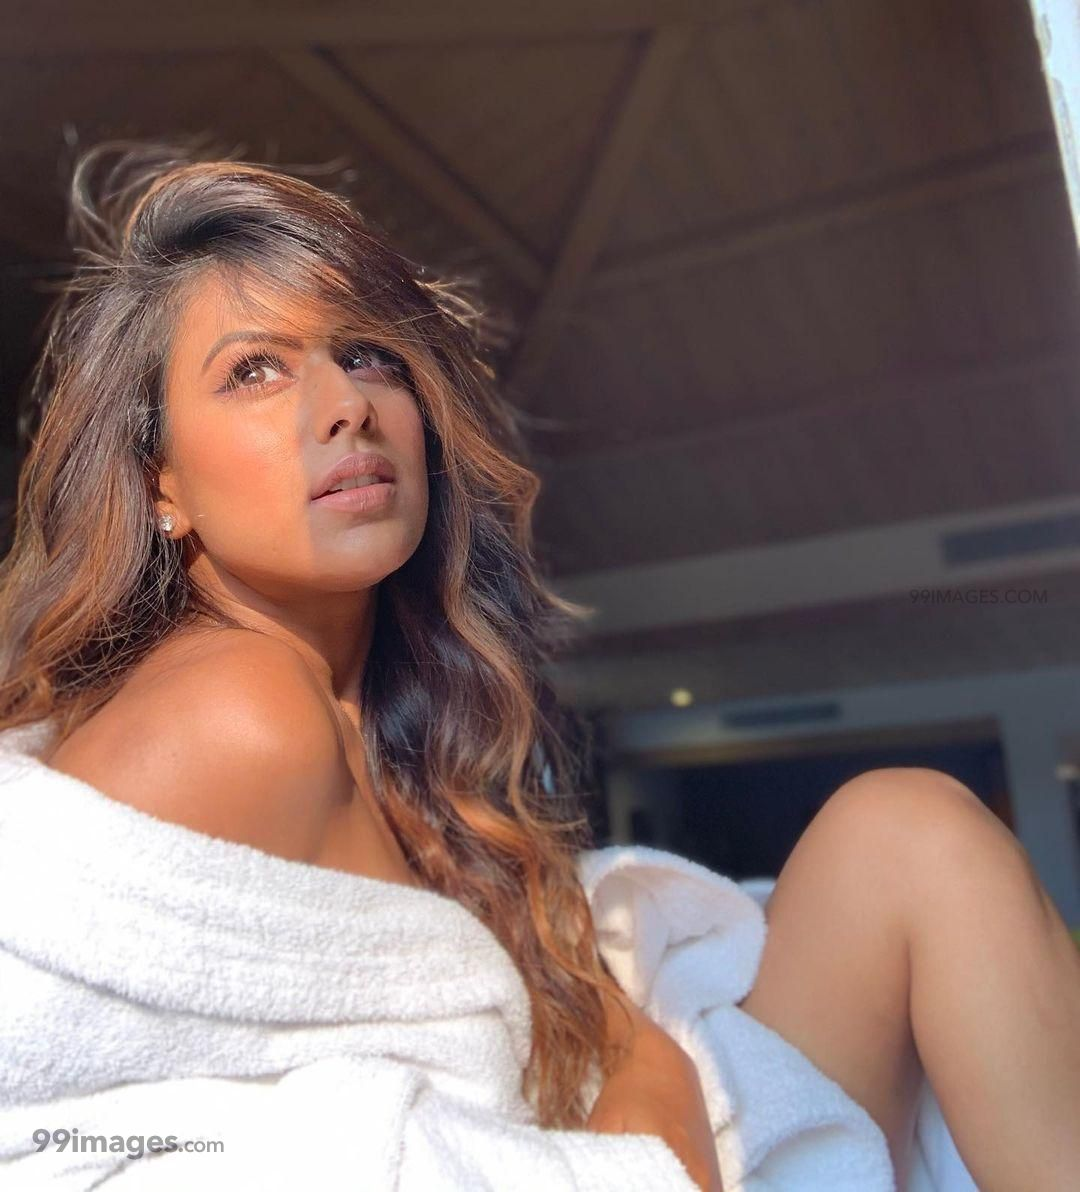 Nia Sharma HD Wallpapers (Desktop Background / Android / iPhone) (1080p, 4k) (261577) - Nia Sharma